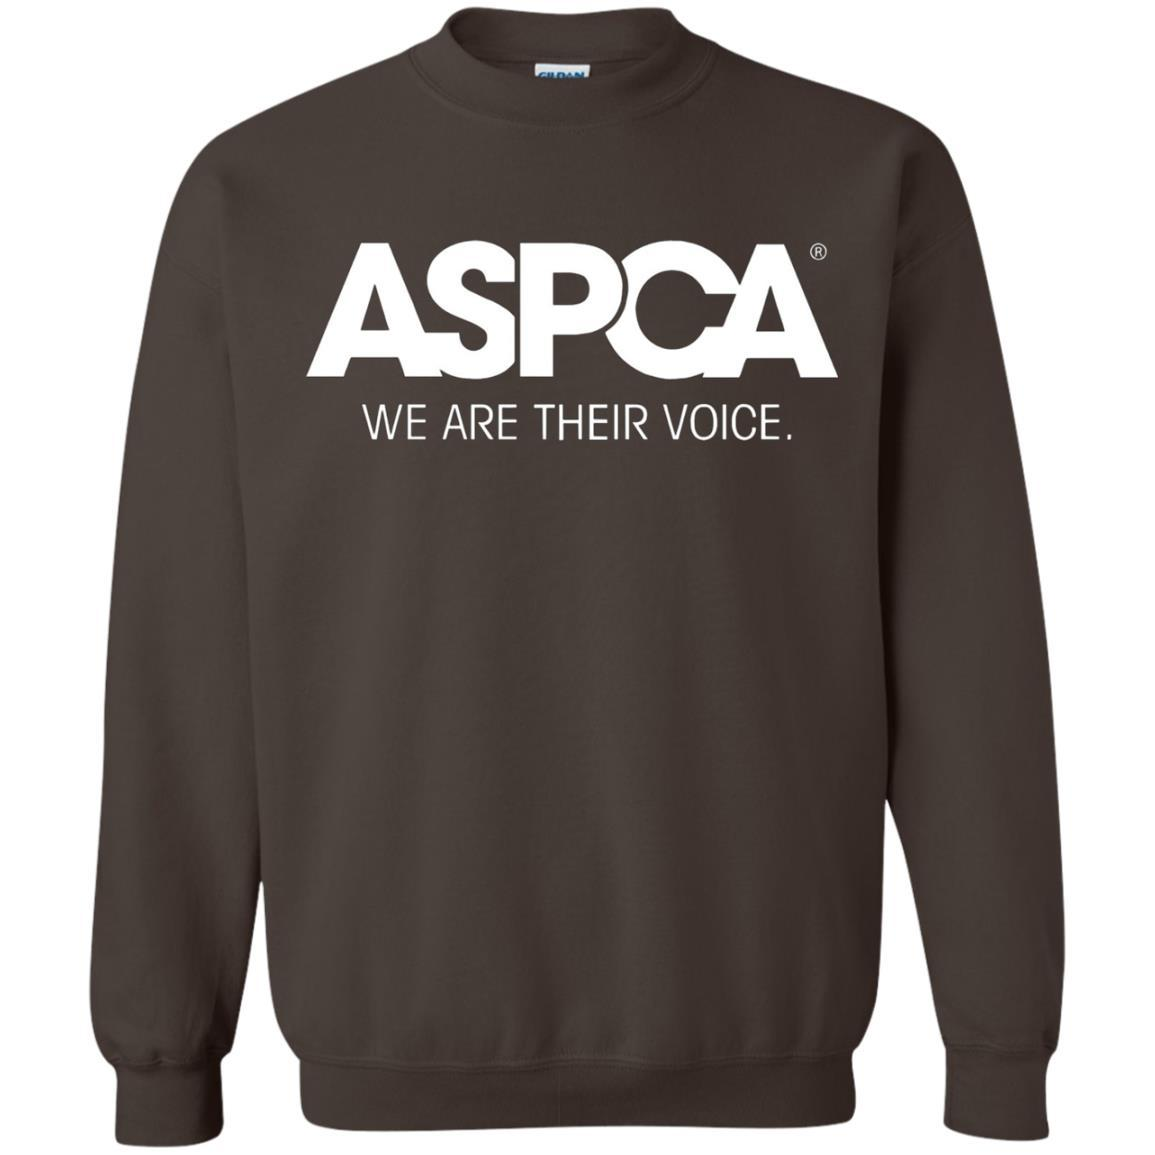 ASPCA Apparel - Crewneck Pullover Sweatshirt Dark Chocolate / 5XL